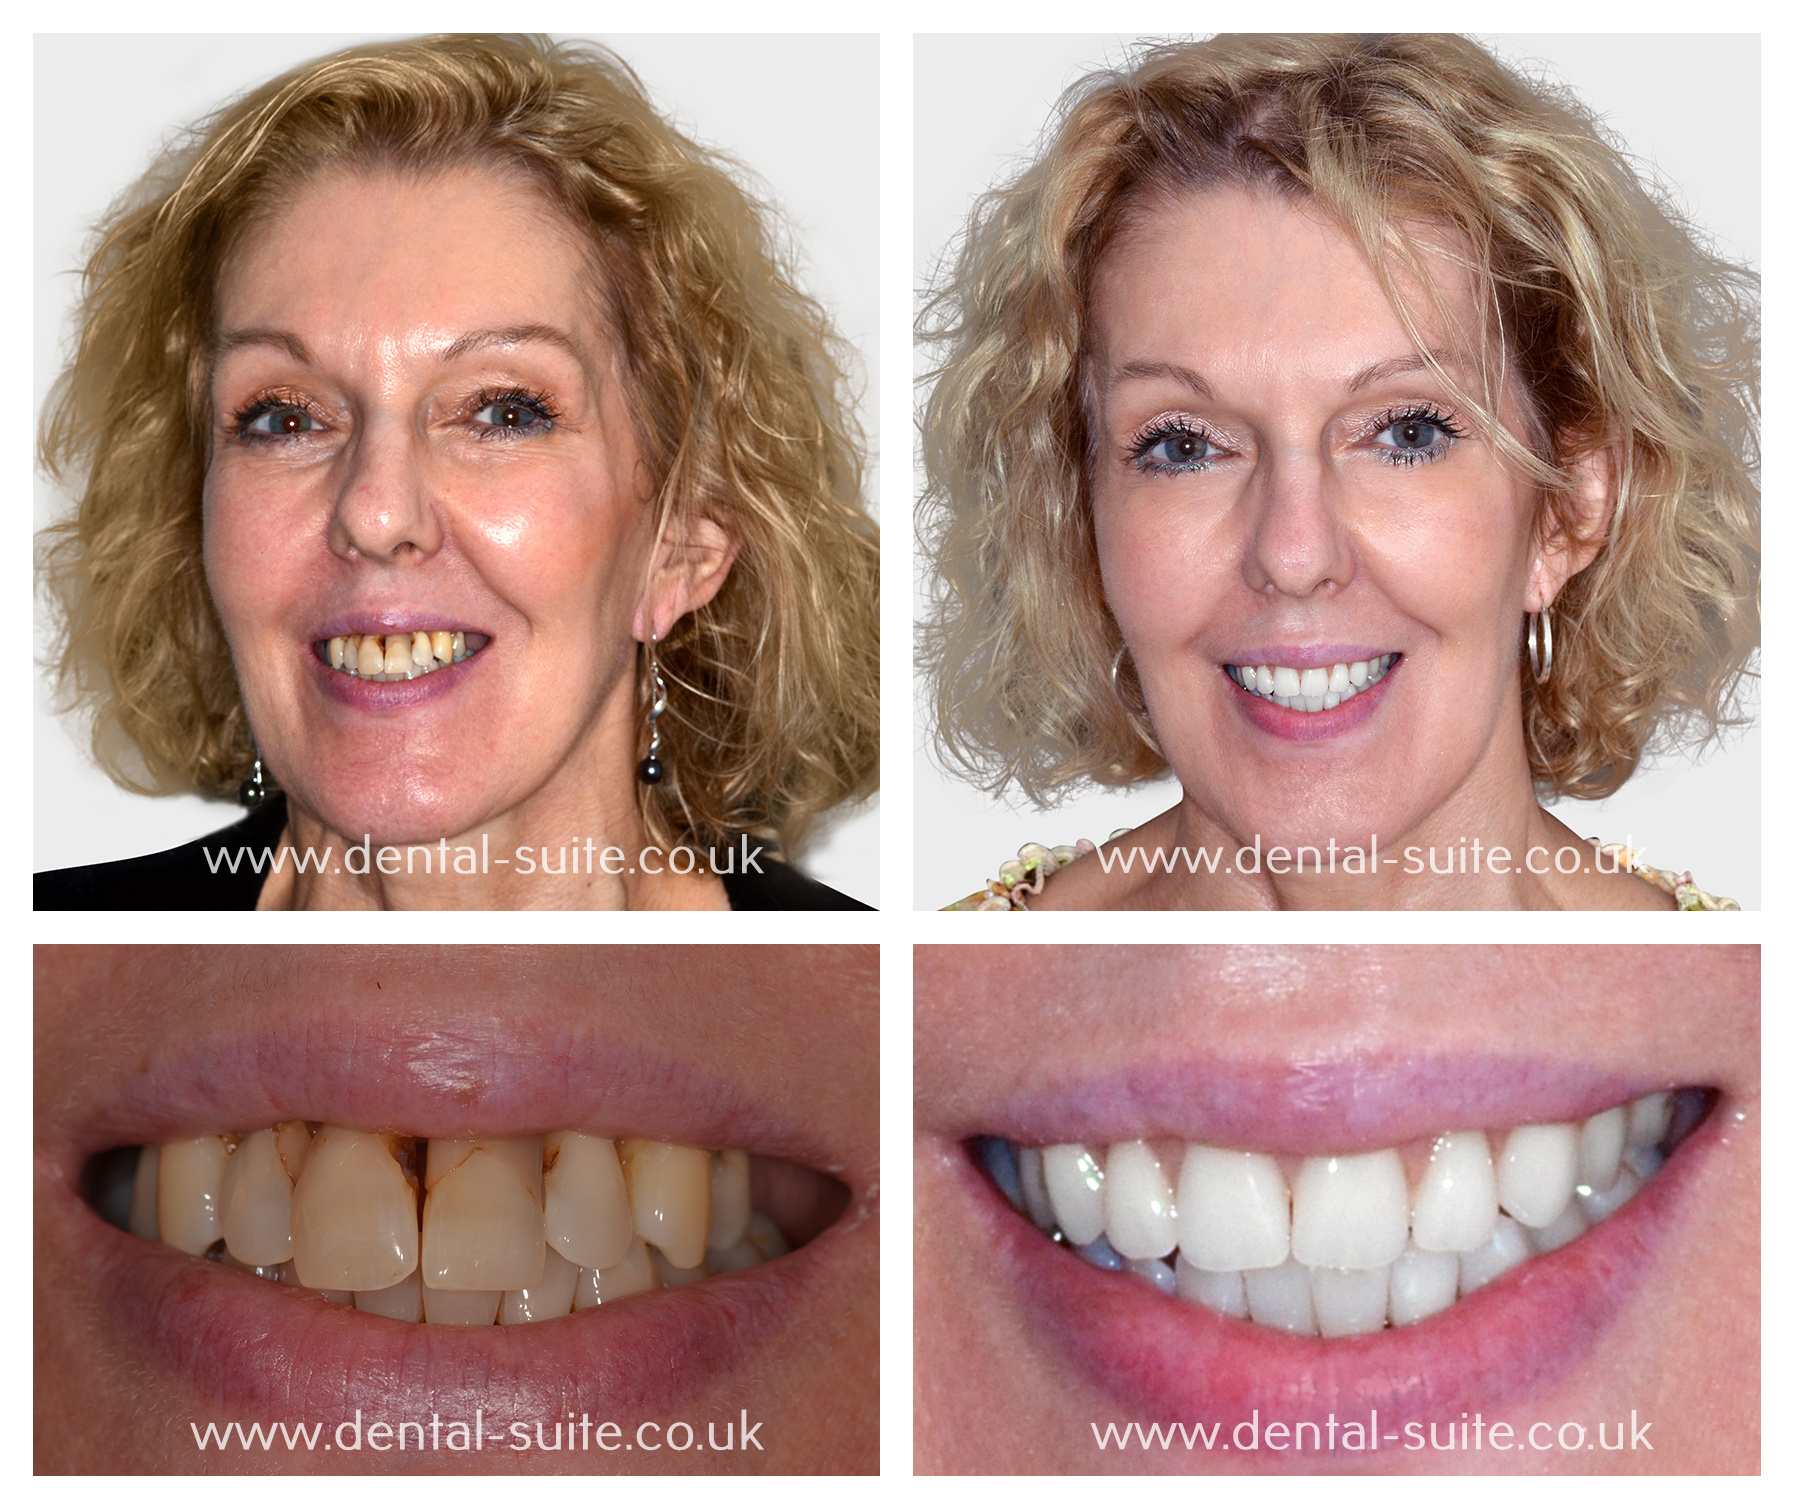 Leicester & Loughborough Complete Smile Makeover Treatment